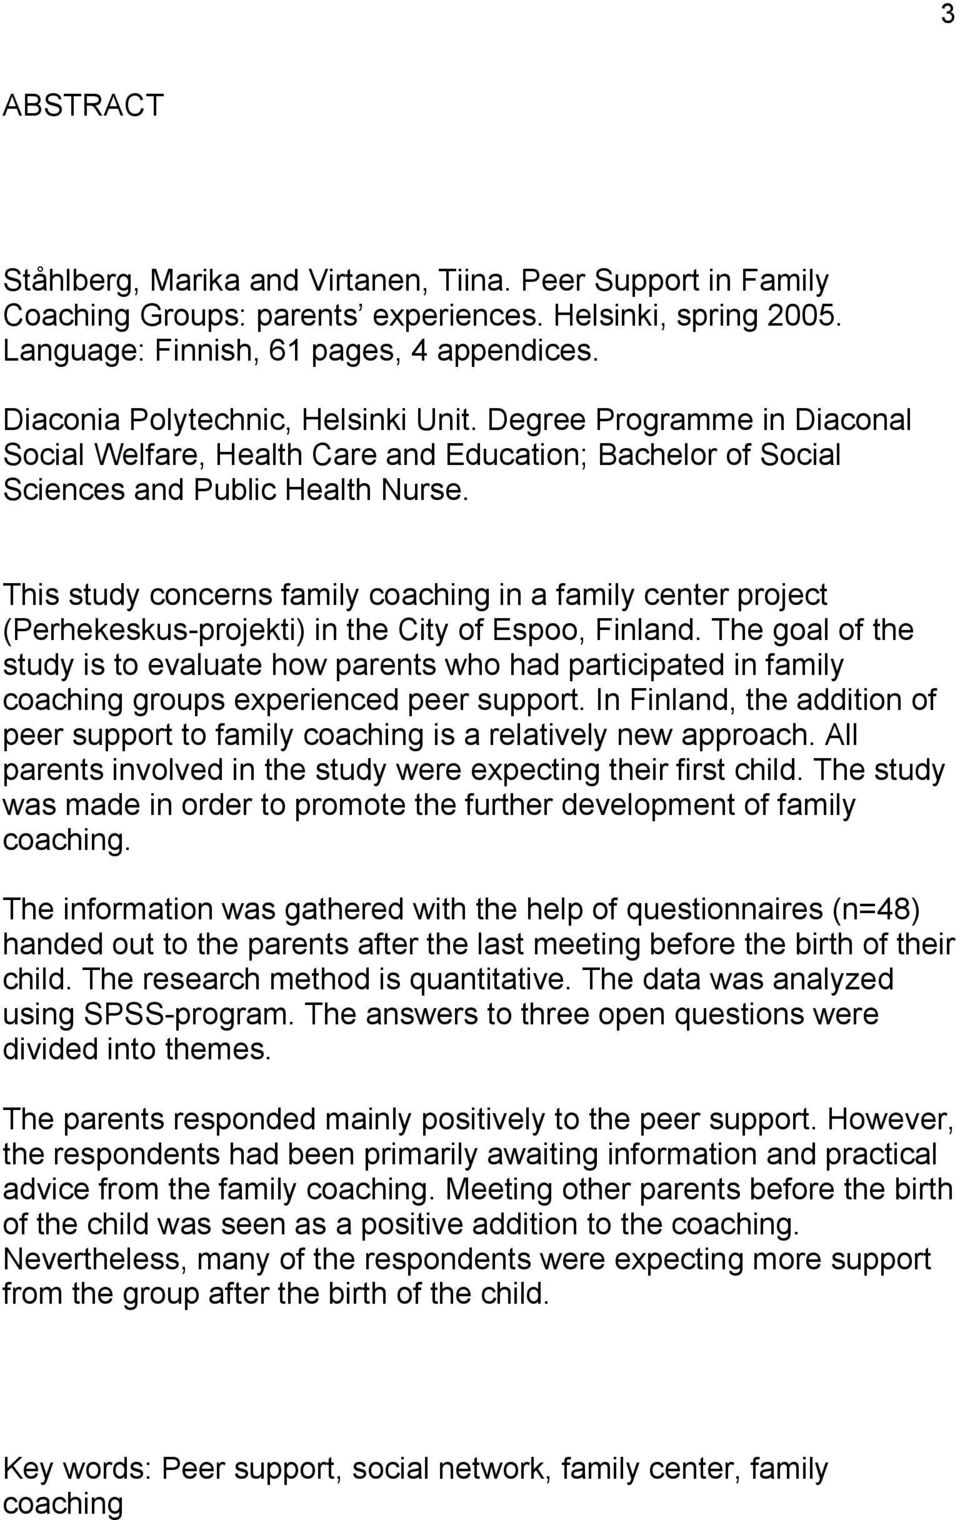 This study concerns family coaching in a family center project (Perhekeskus-projekti) in the City of Espoo, Finland.